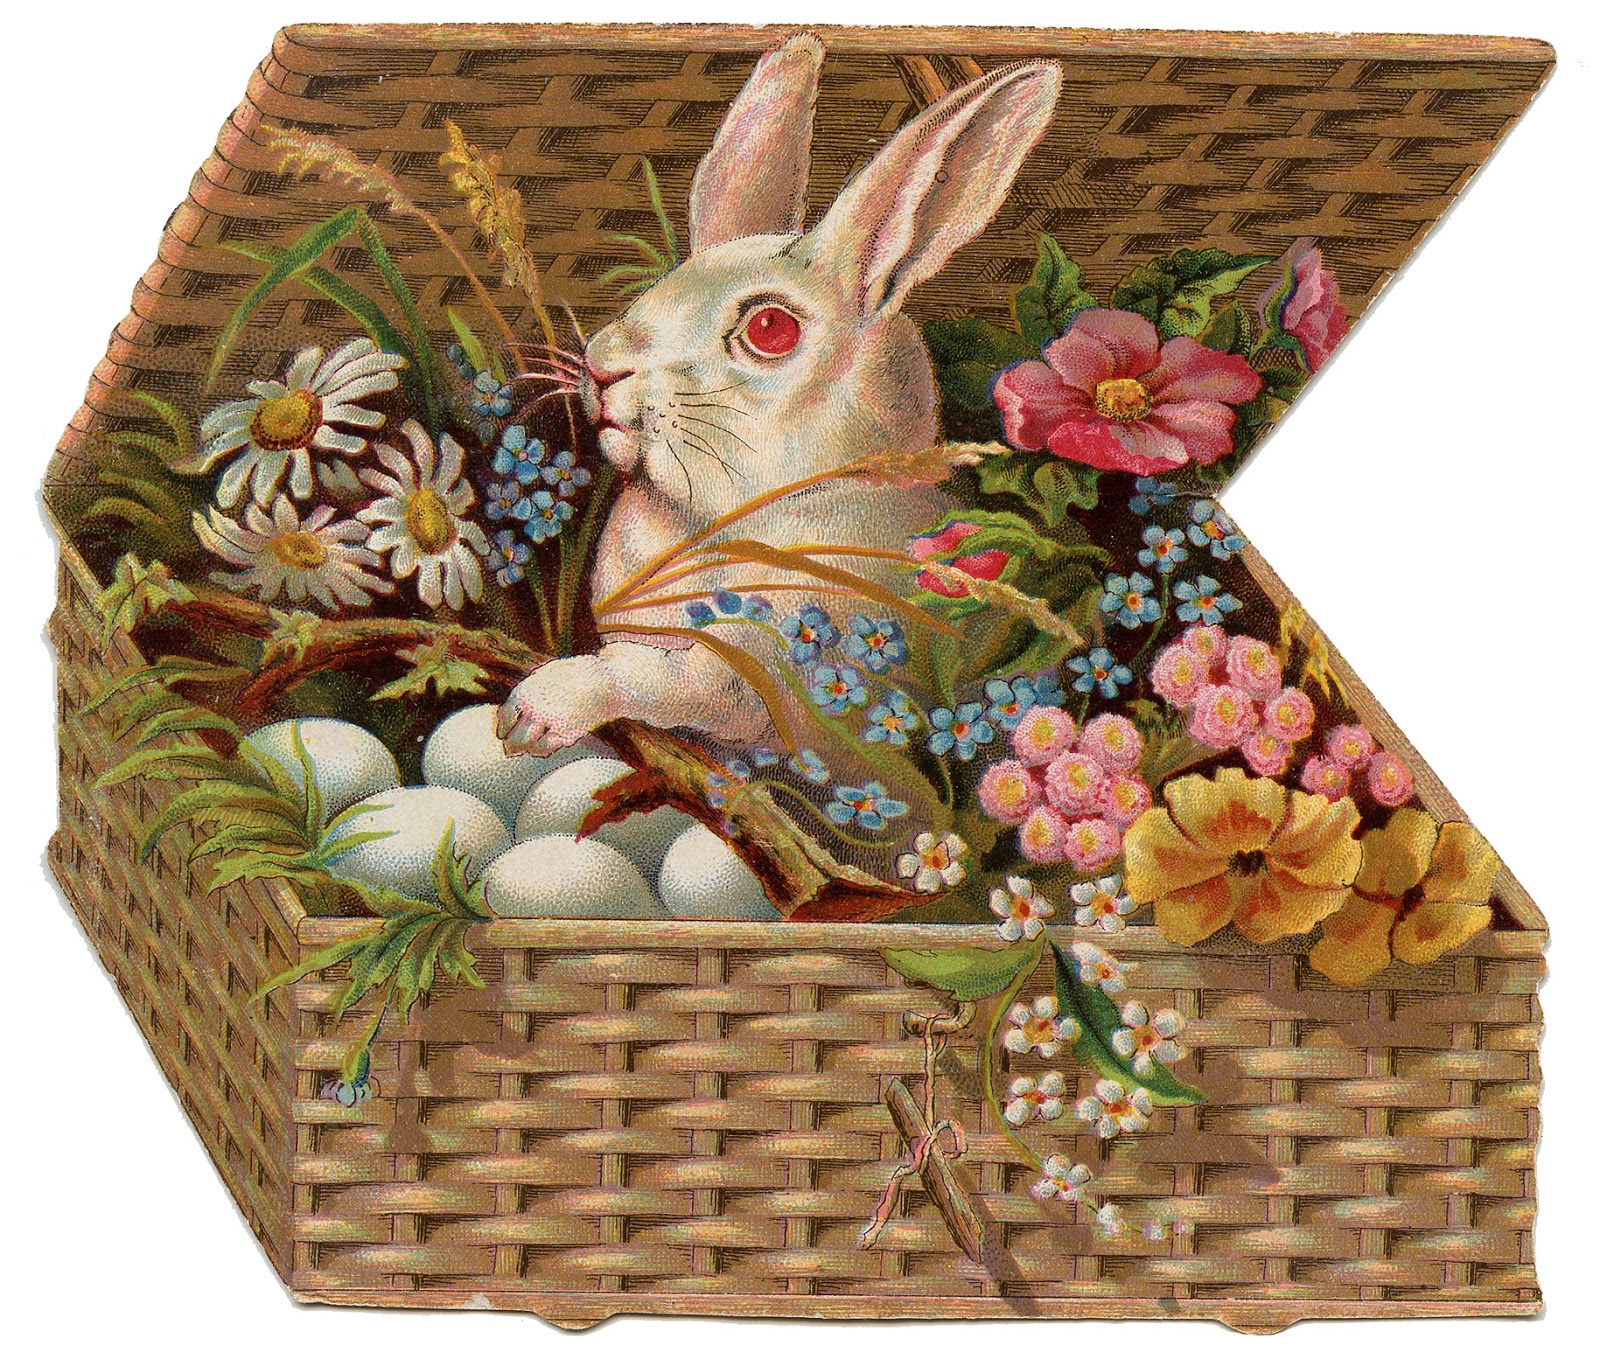 Vintage Easter Clip Art Of Bunny In Basket   The Graphics Fairy